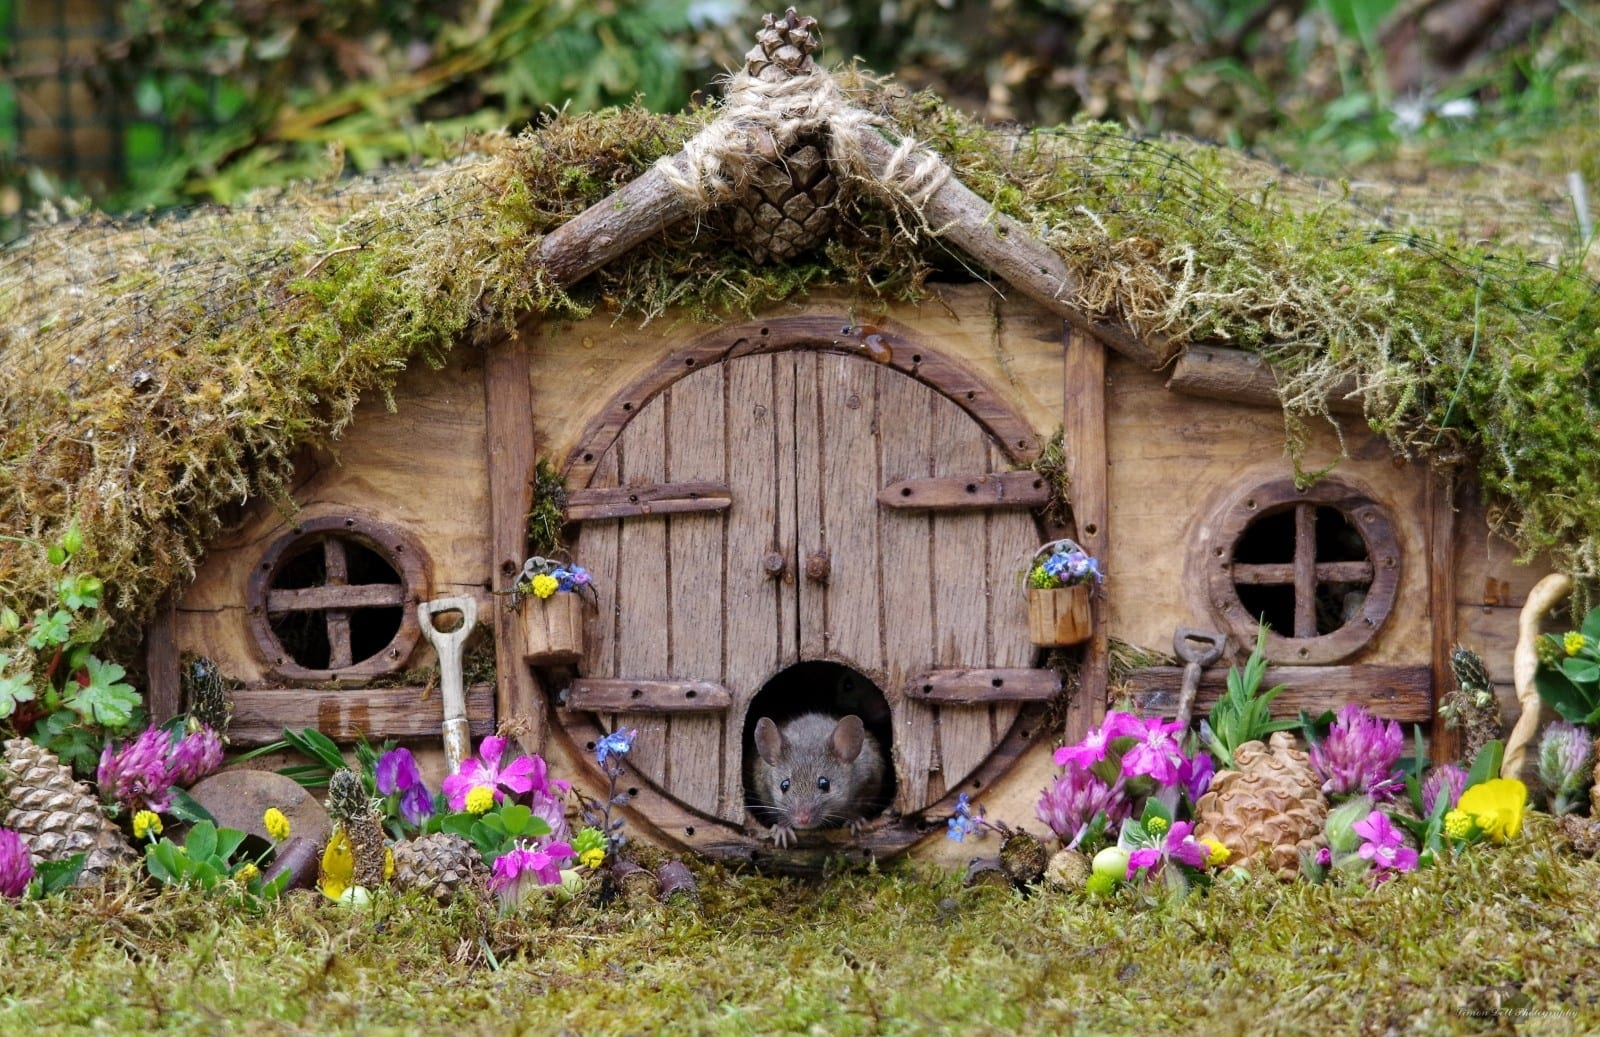 A British Photographer Has Made An Adorable Resort For Wild Mice In His Back Garden